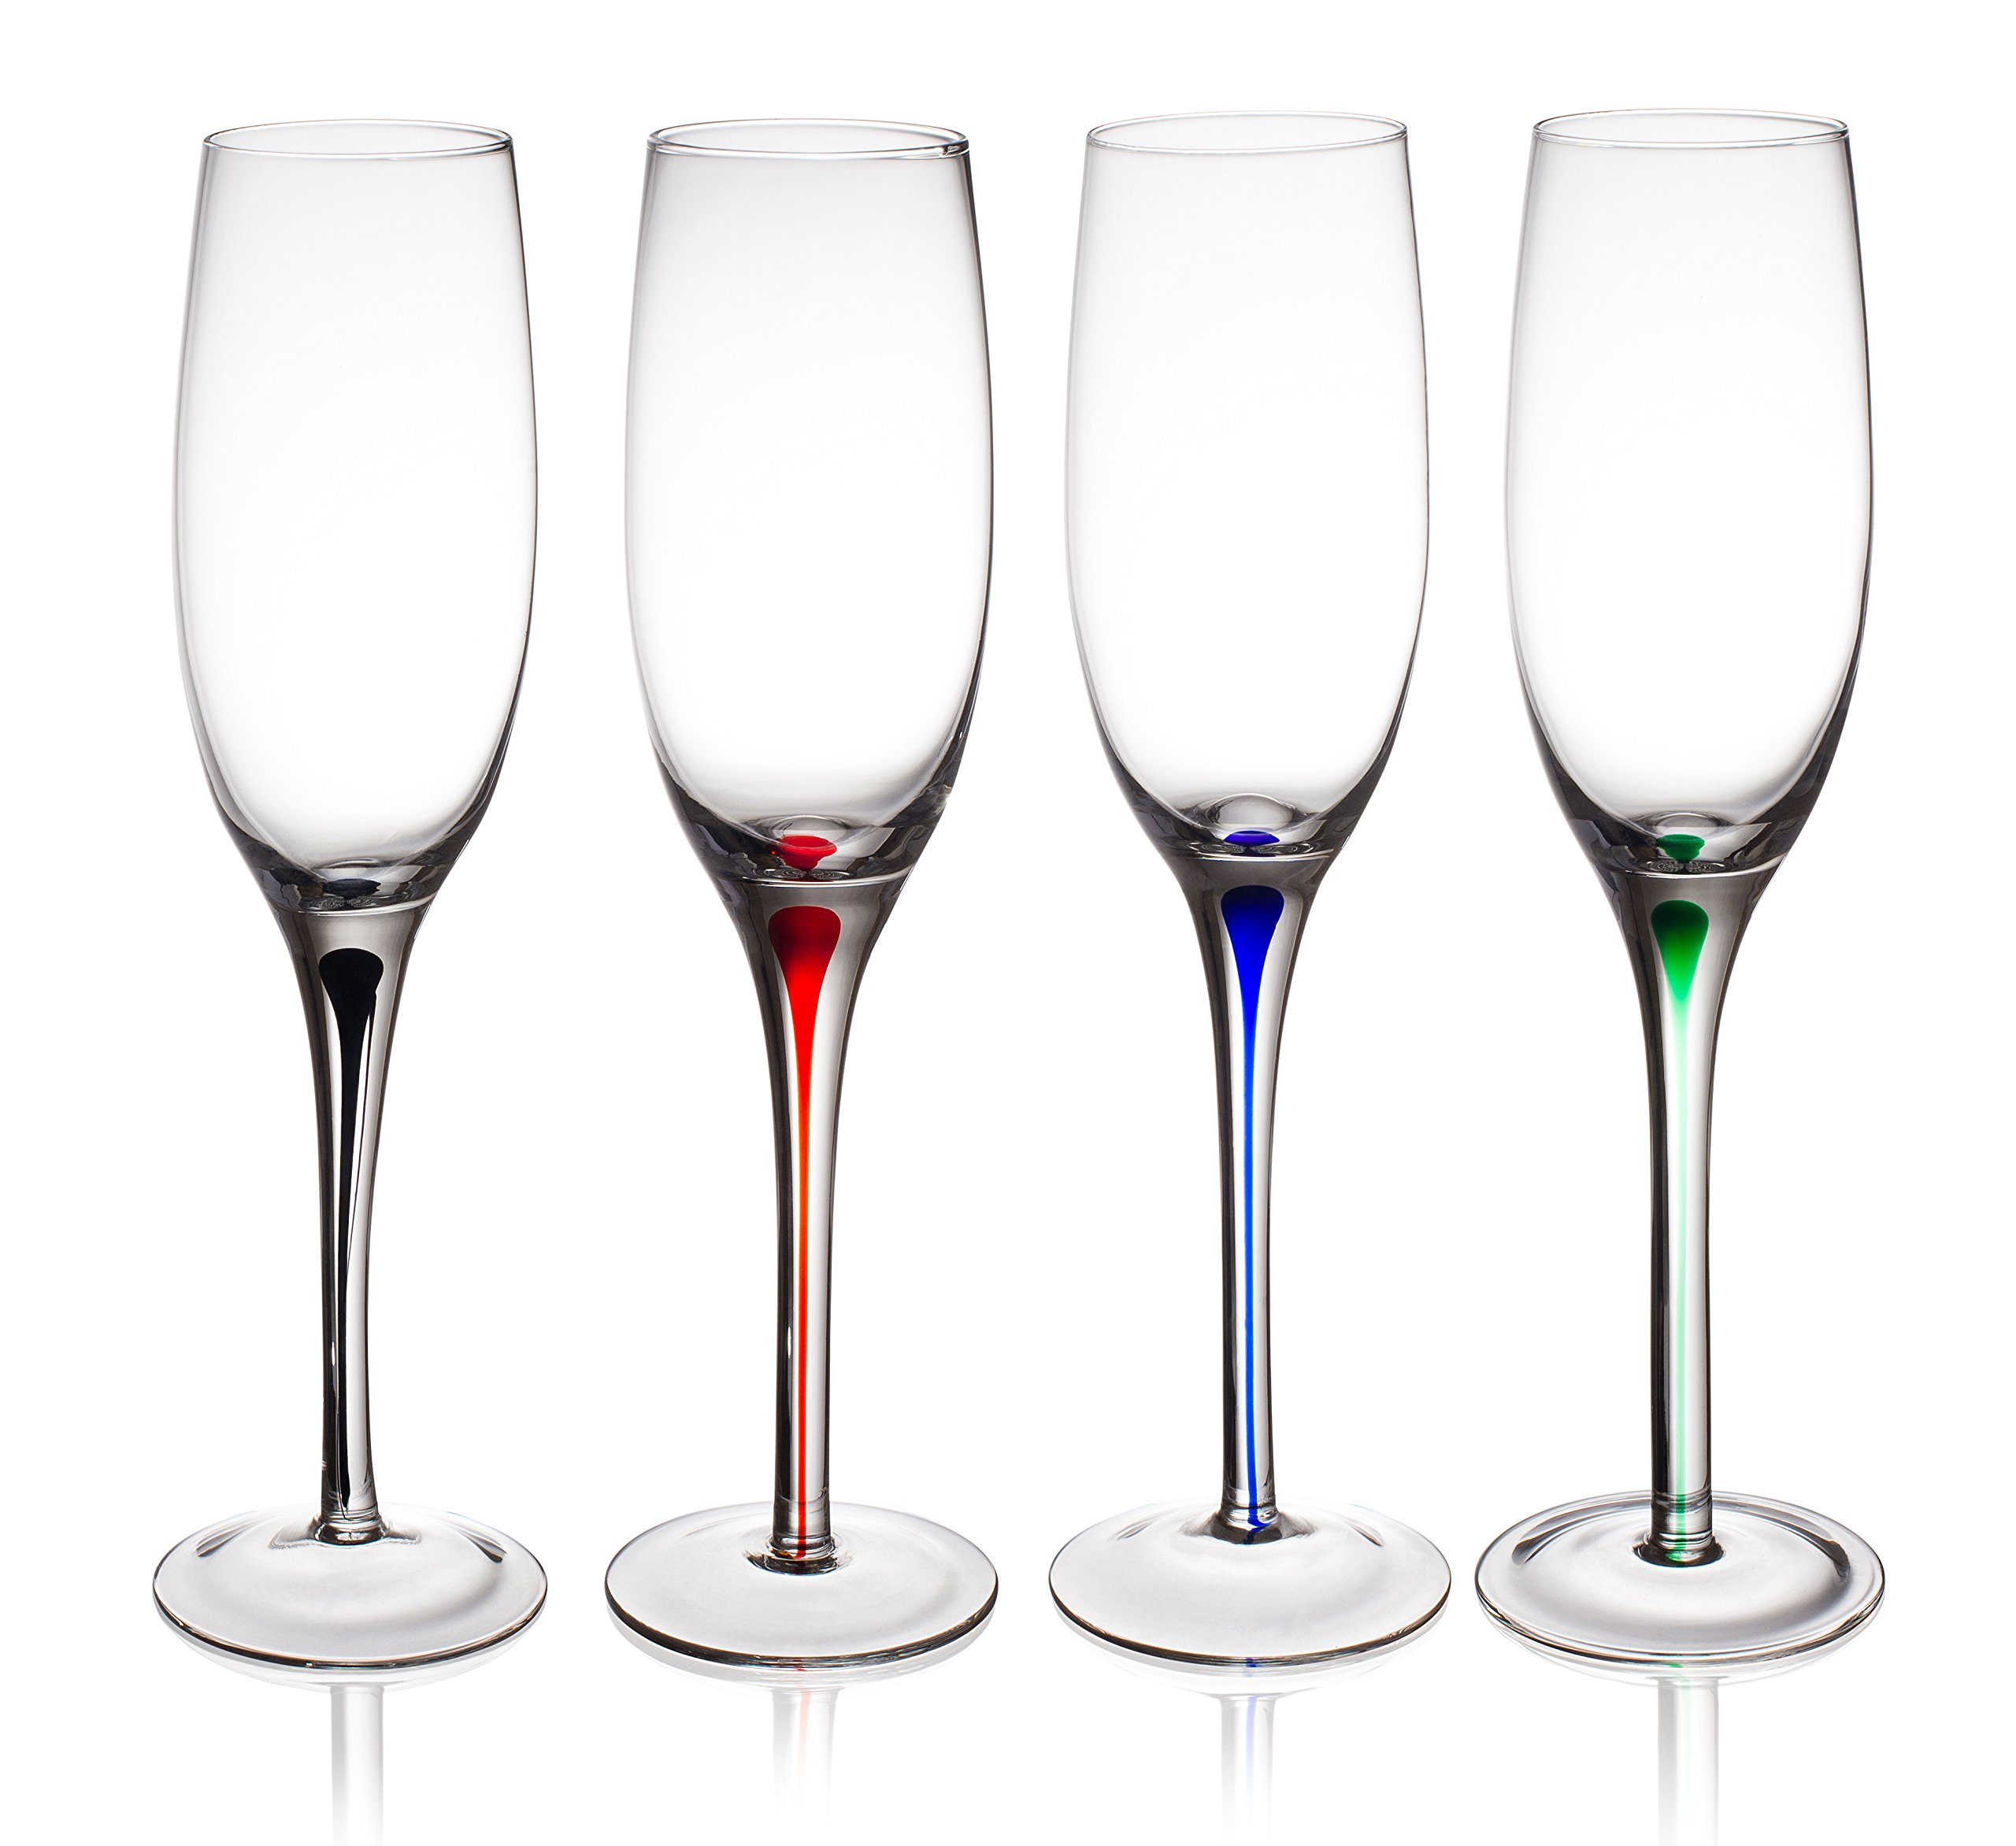 Trinkware Set of 4 Champagne Flutes With Raindrop Stem in Red, Green, Blue And Black - Long Stem Glasses, 9oz, 10-inches Tall – Elegant Glassware And Stemware